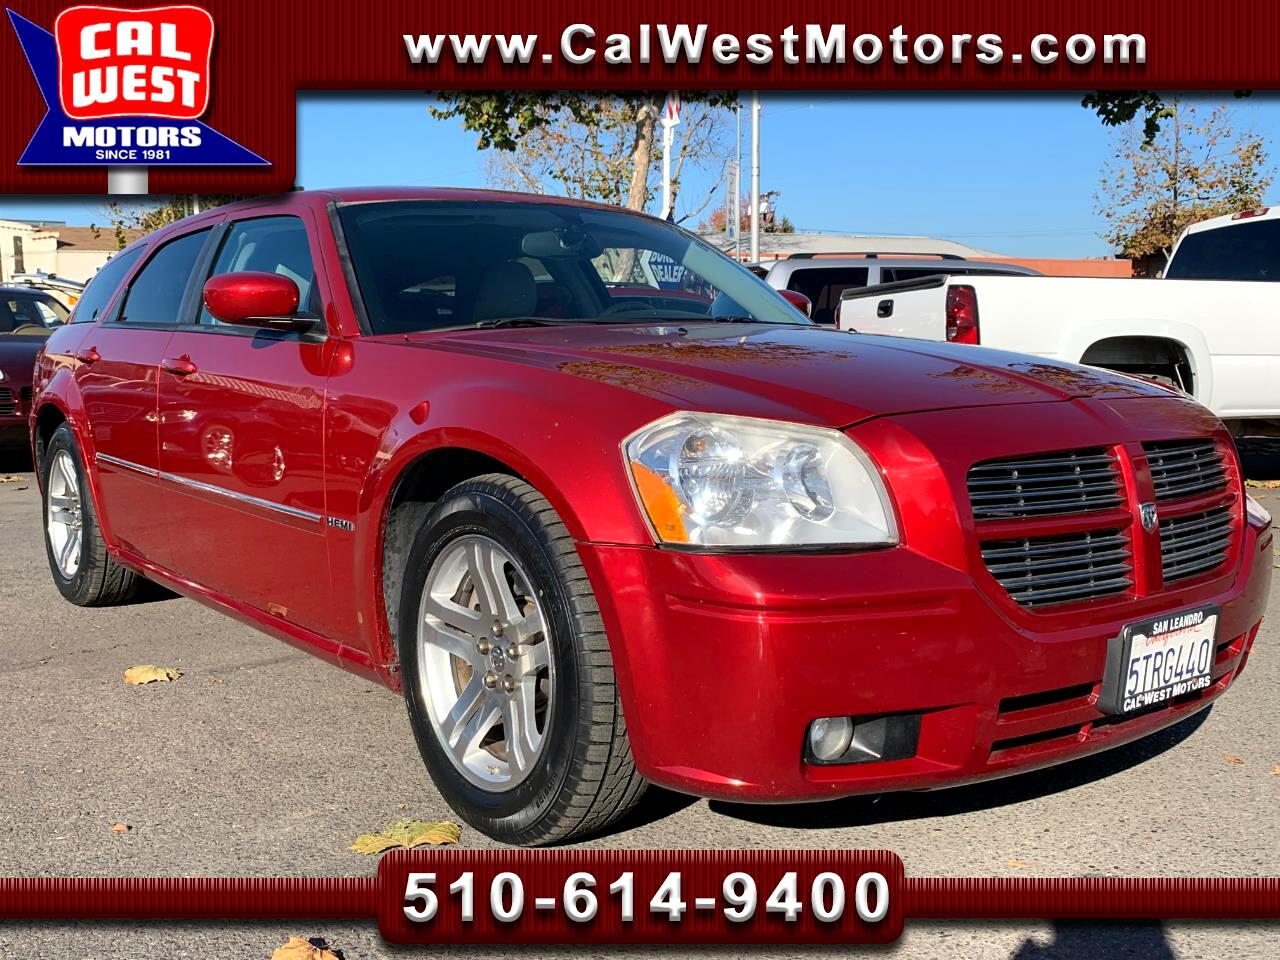 2006 Dodge Magnum R/T Sport Wagon Leather 1Owner LowMiles ExMtnce Ni